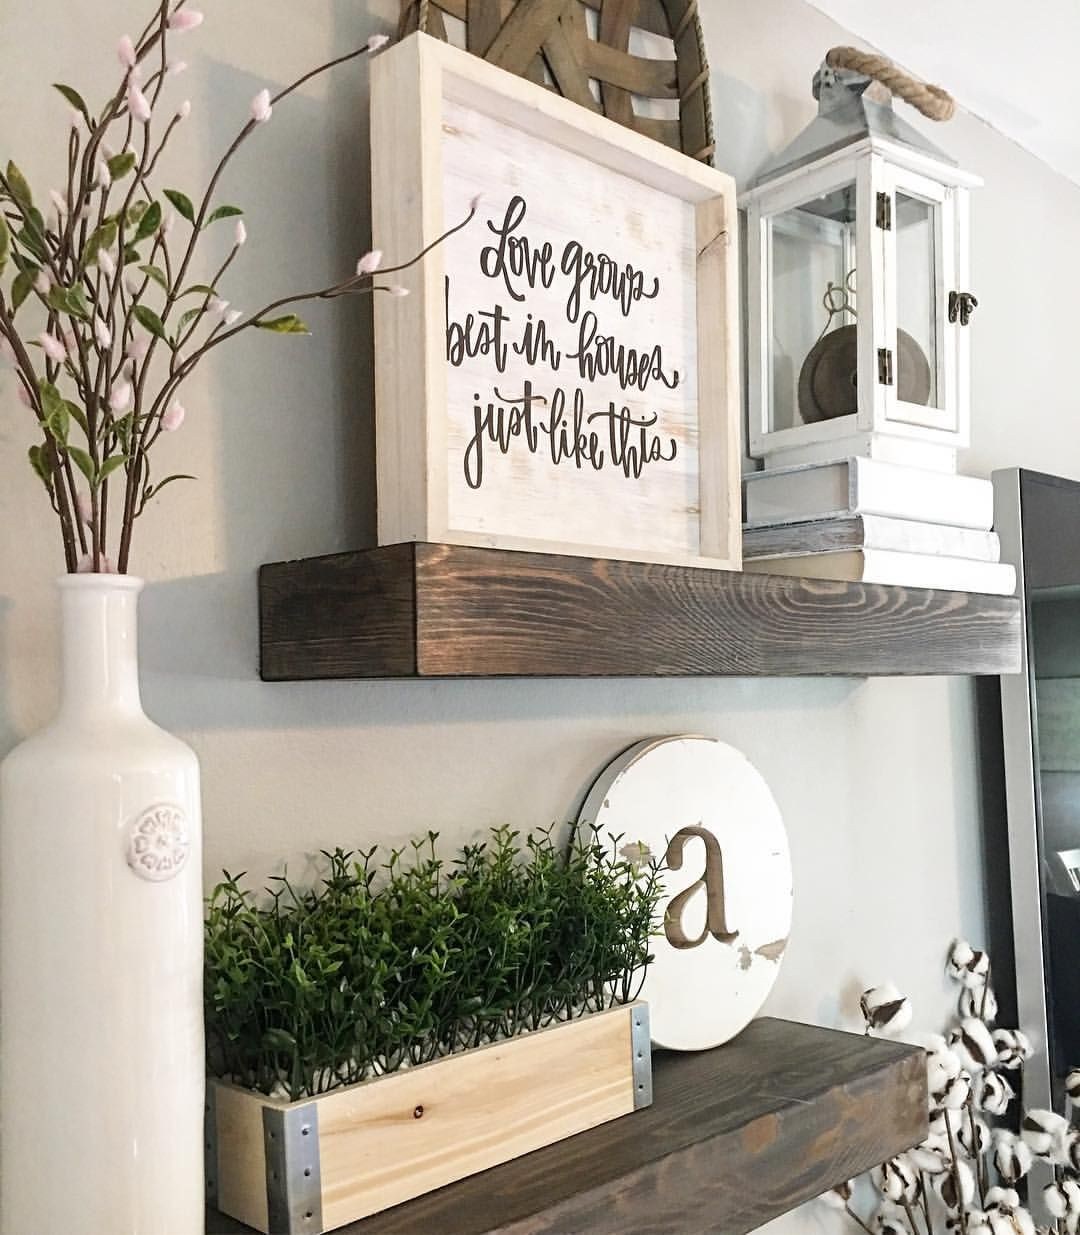 Industrial Farmhouse Living Room: Floating Shelves, Wood Shelves, Farmhouse Decor, Farmhouse